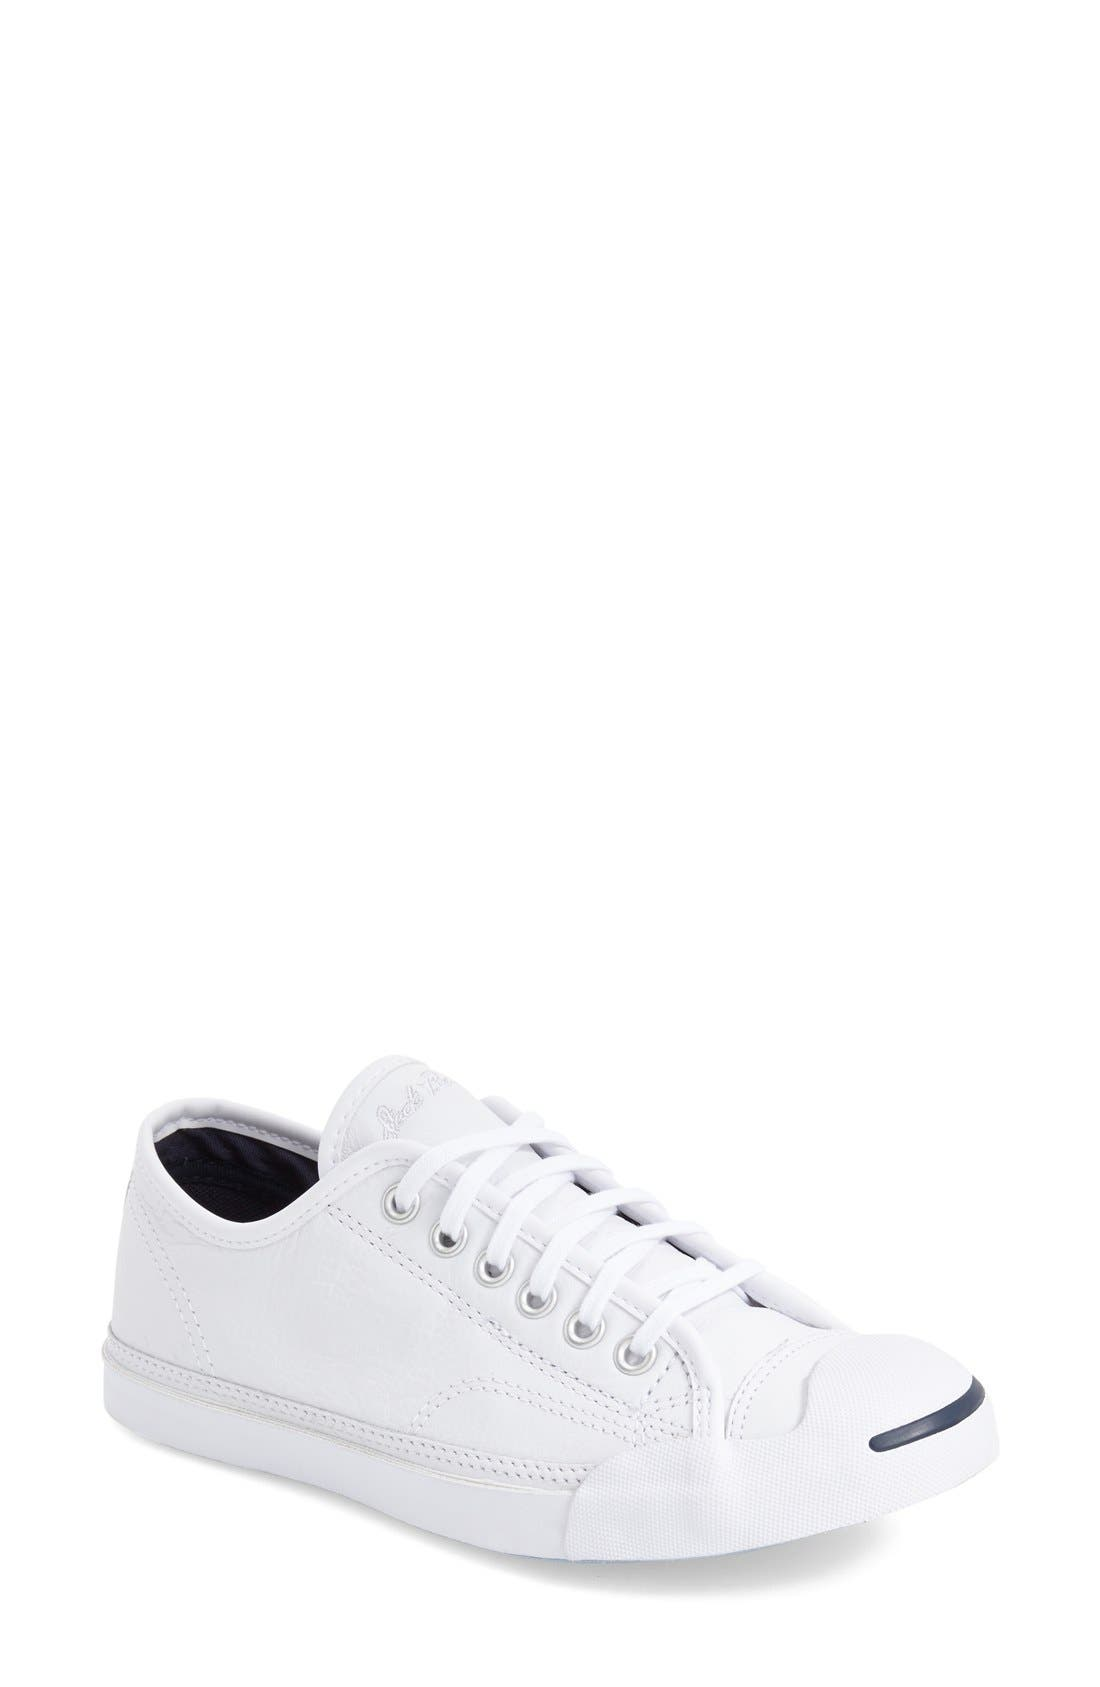 Alternate Image 1 Selected - Converse 'Jack Purcell' Low Top Sneaker (Women)